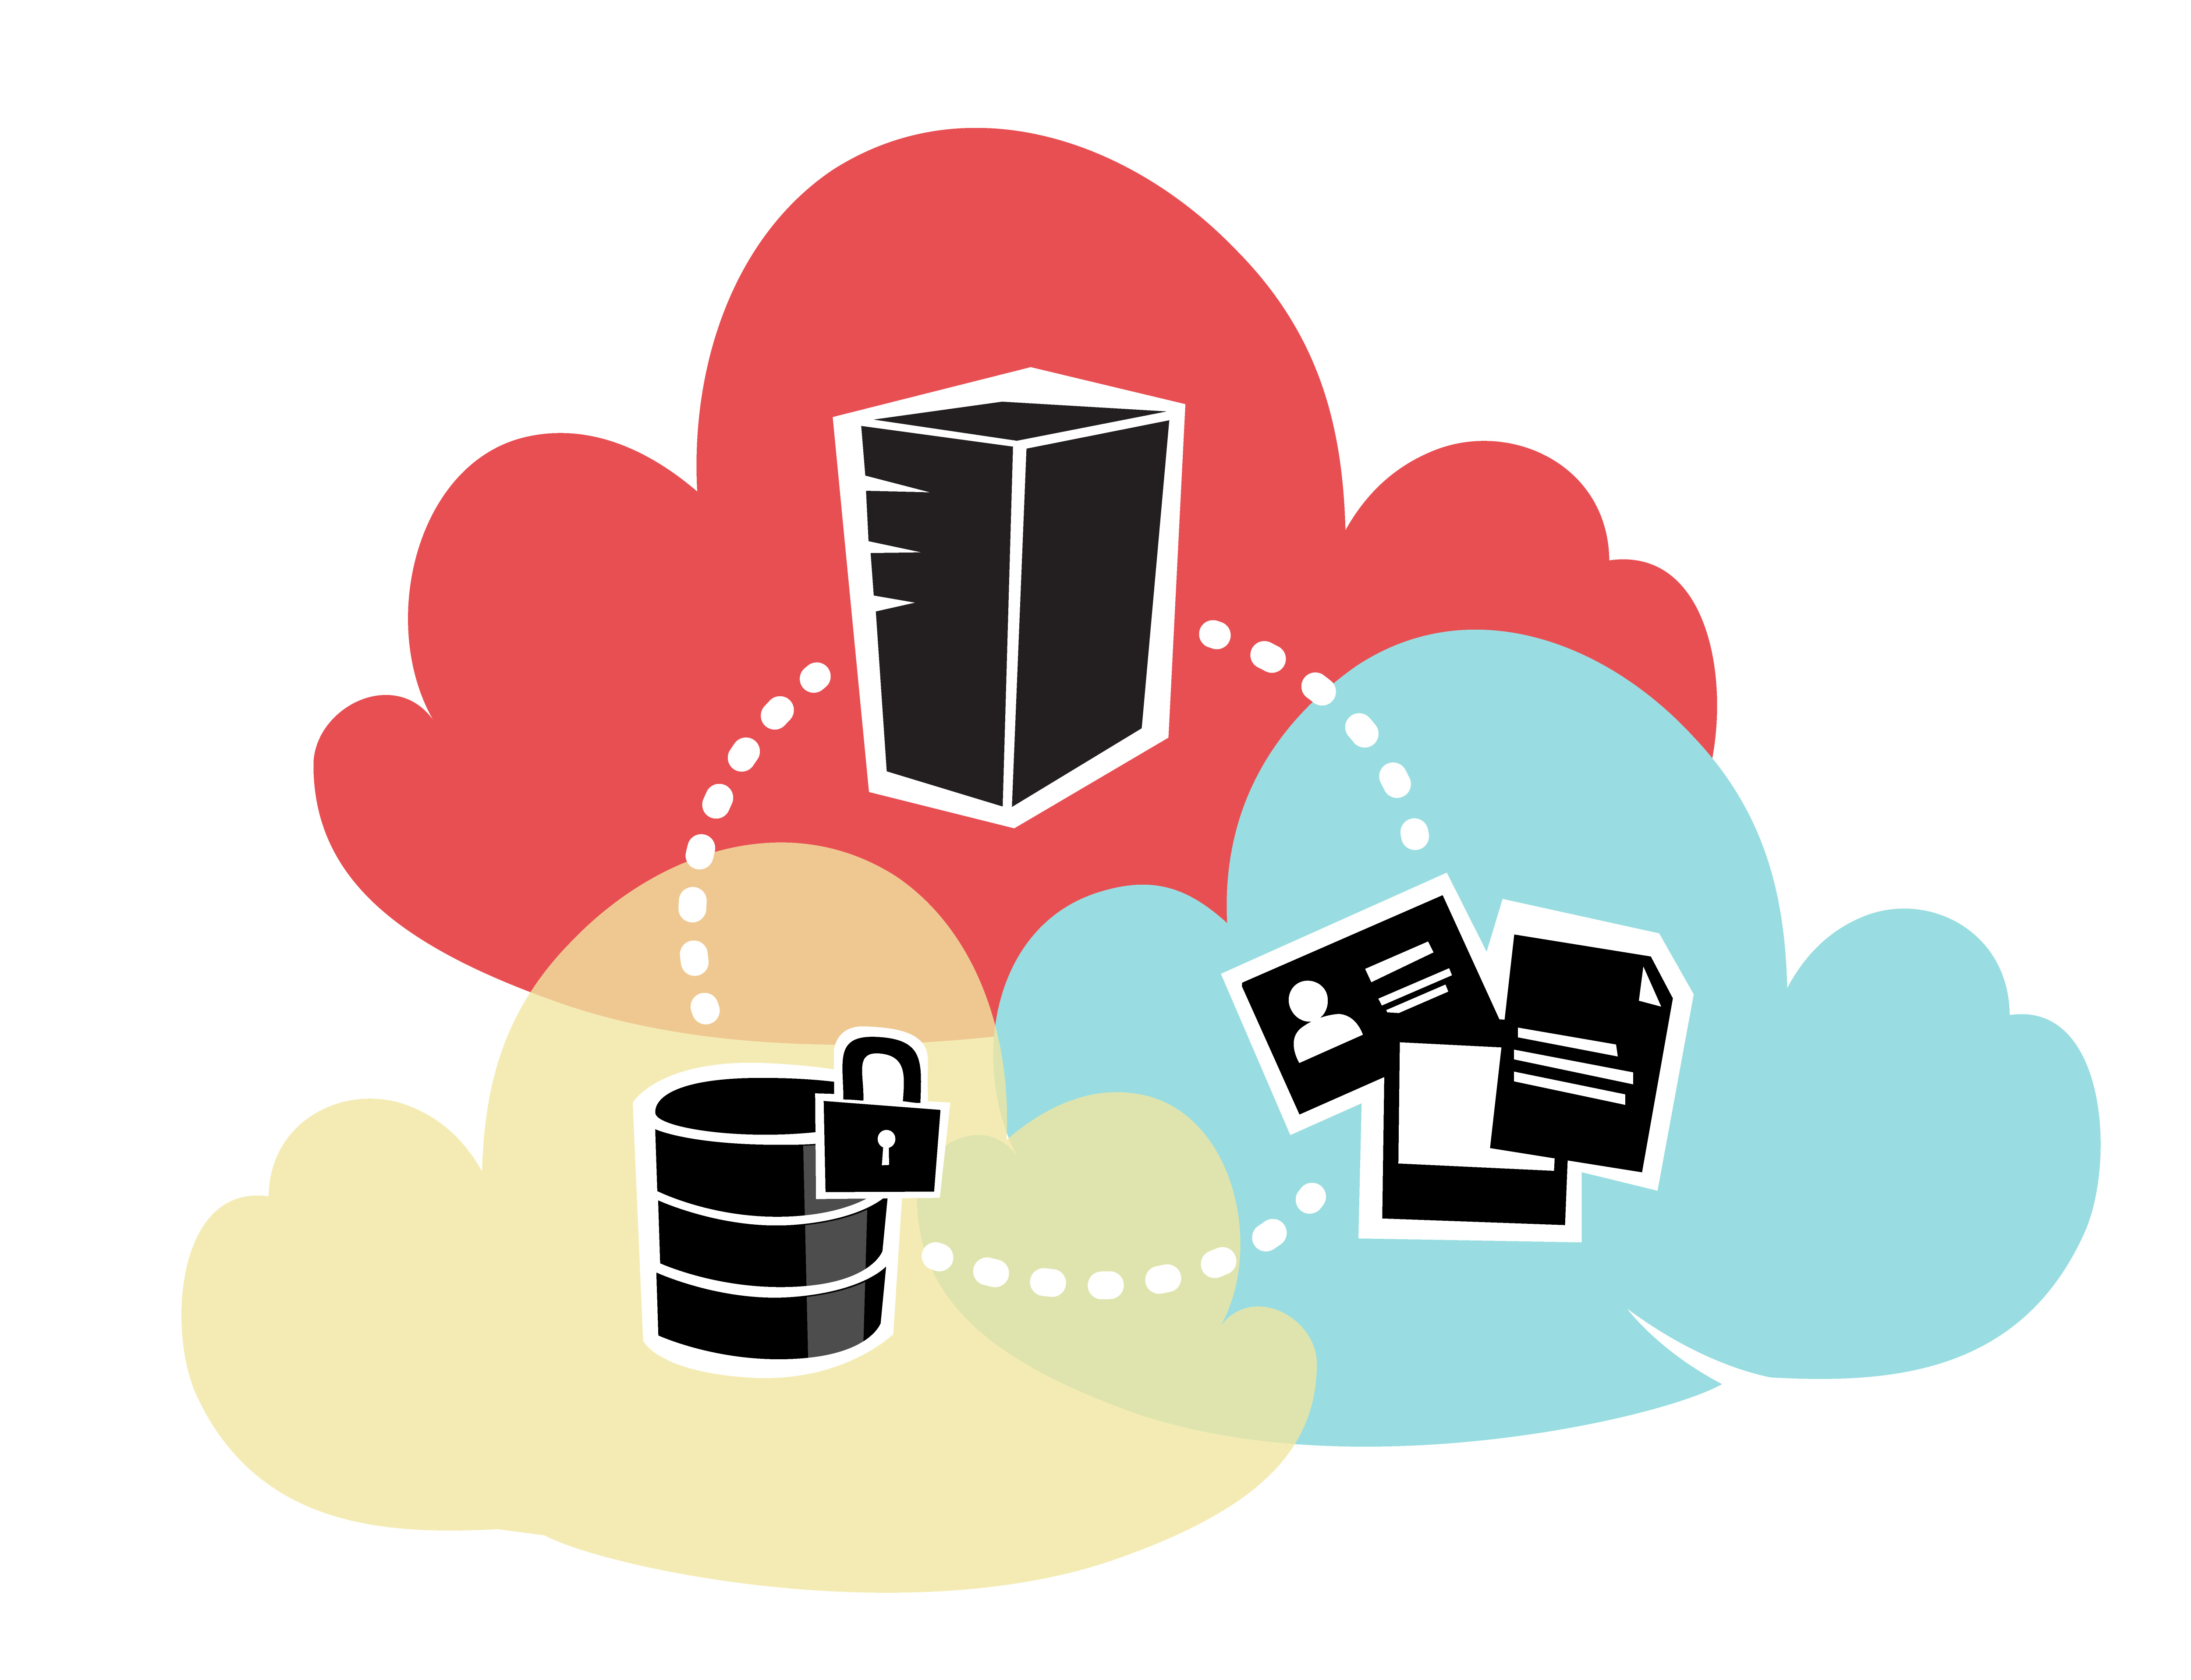 Syncing folders to any remote Cloud Storage from a headless Linux